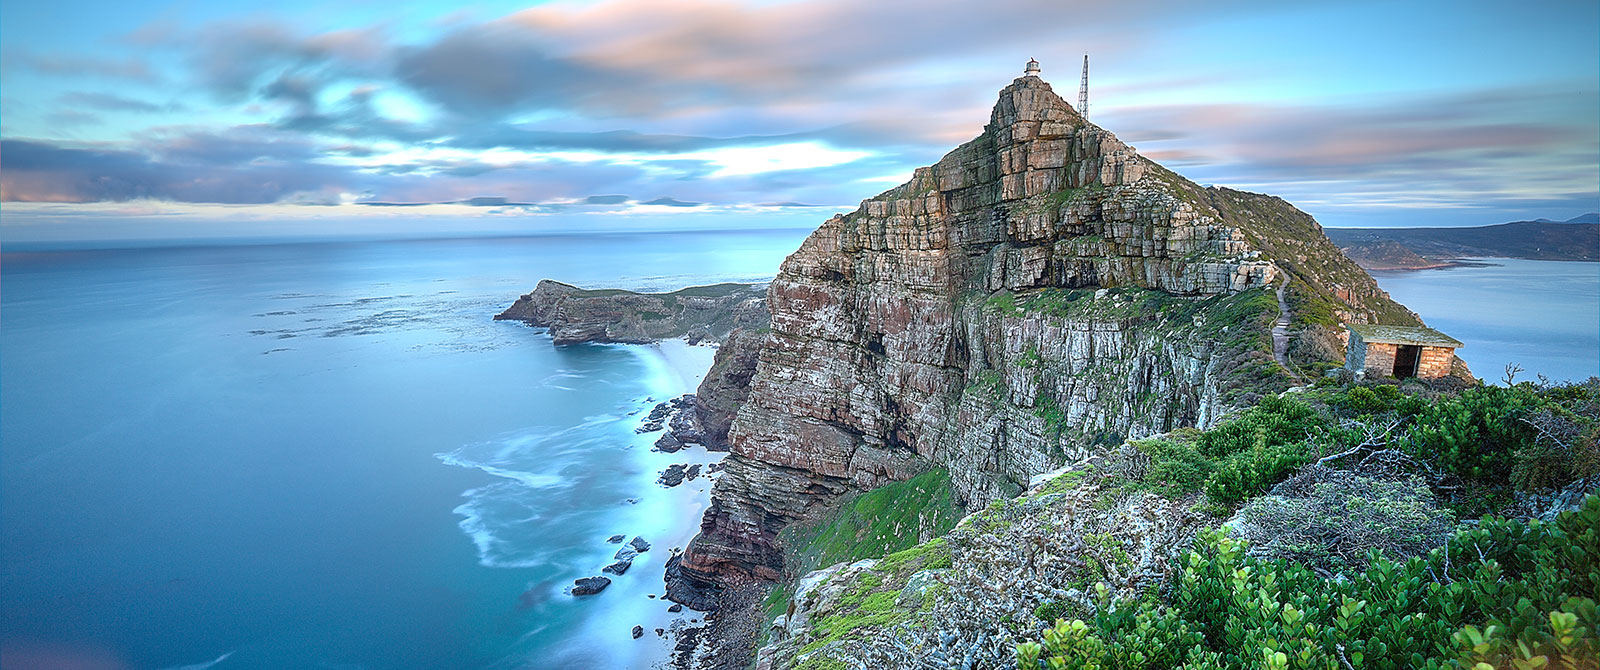 Cape Point, South Africa - Cape Town Day Trips